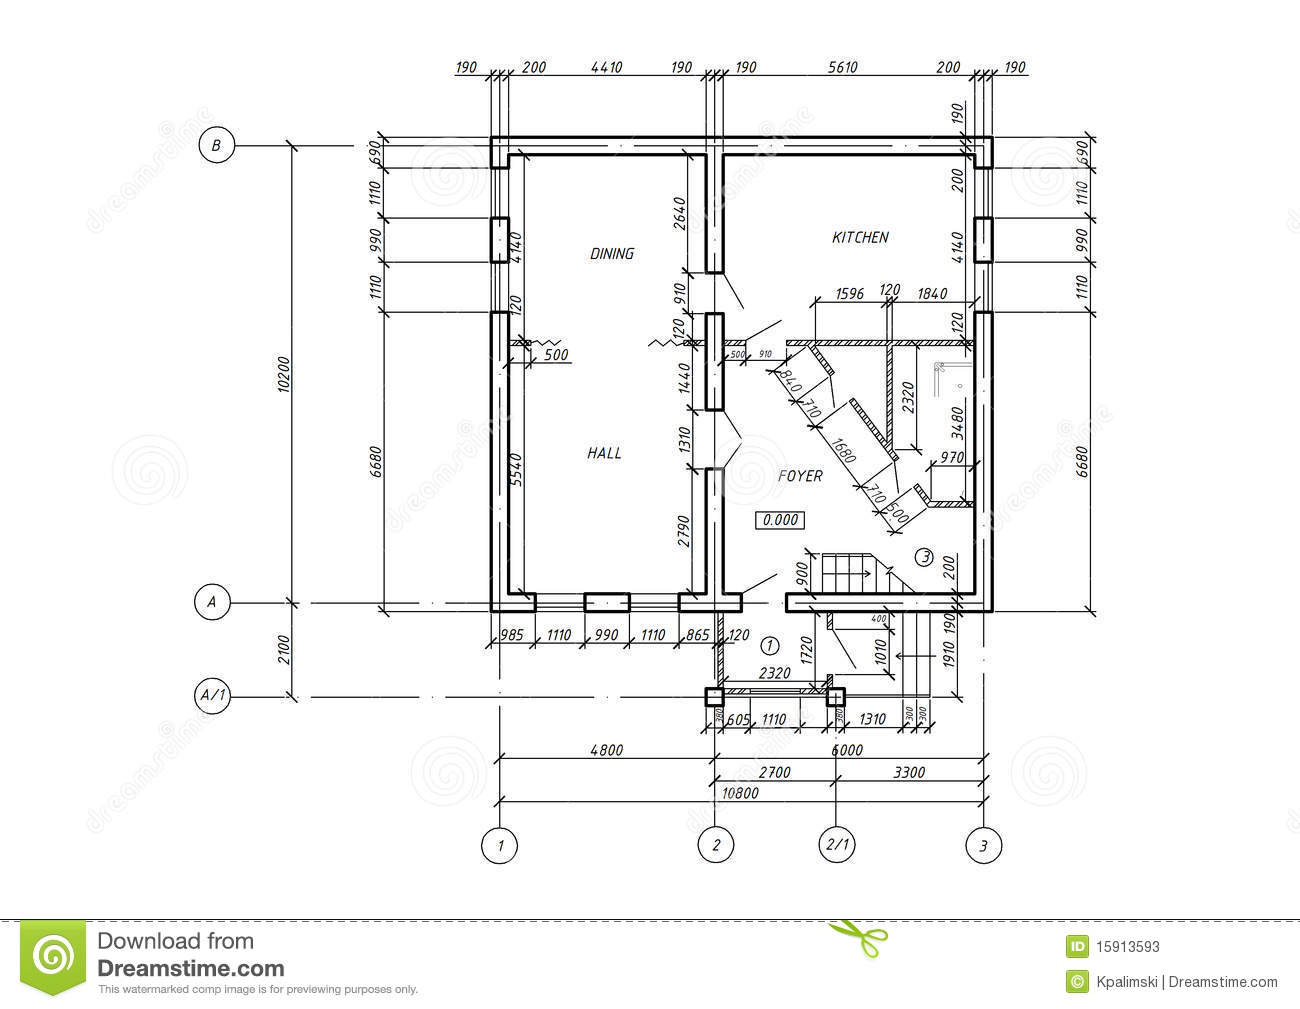 Cad architectural plan blueprint stock illustration for Cad blueprints